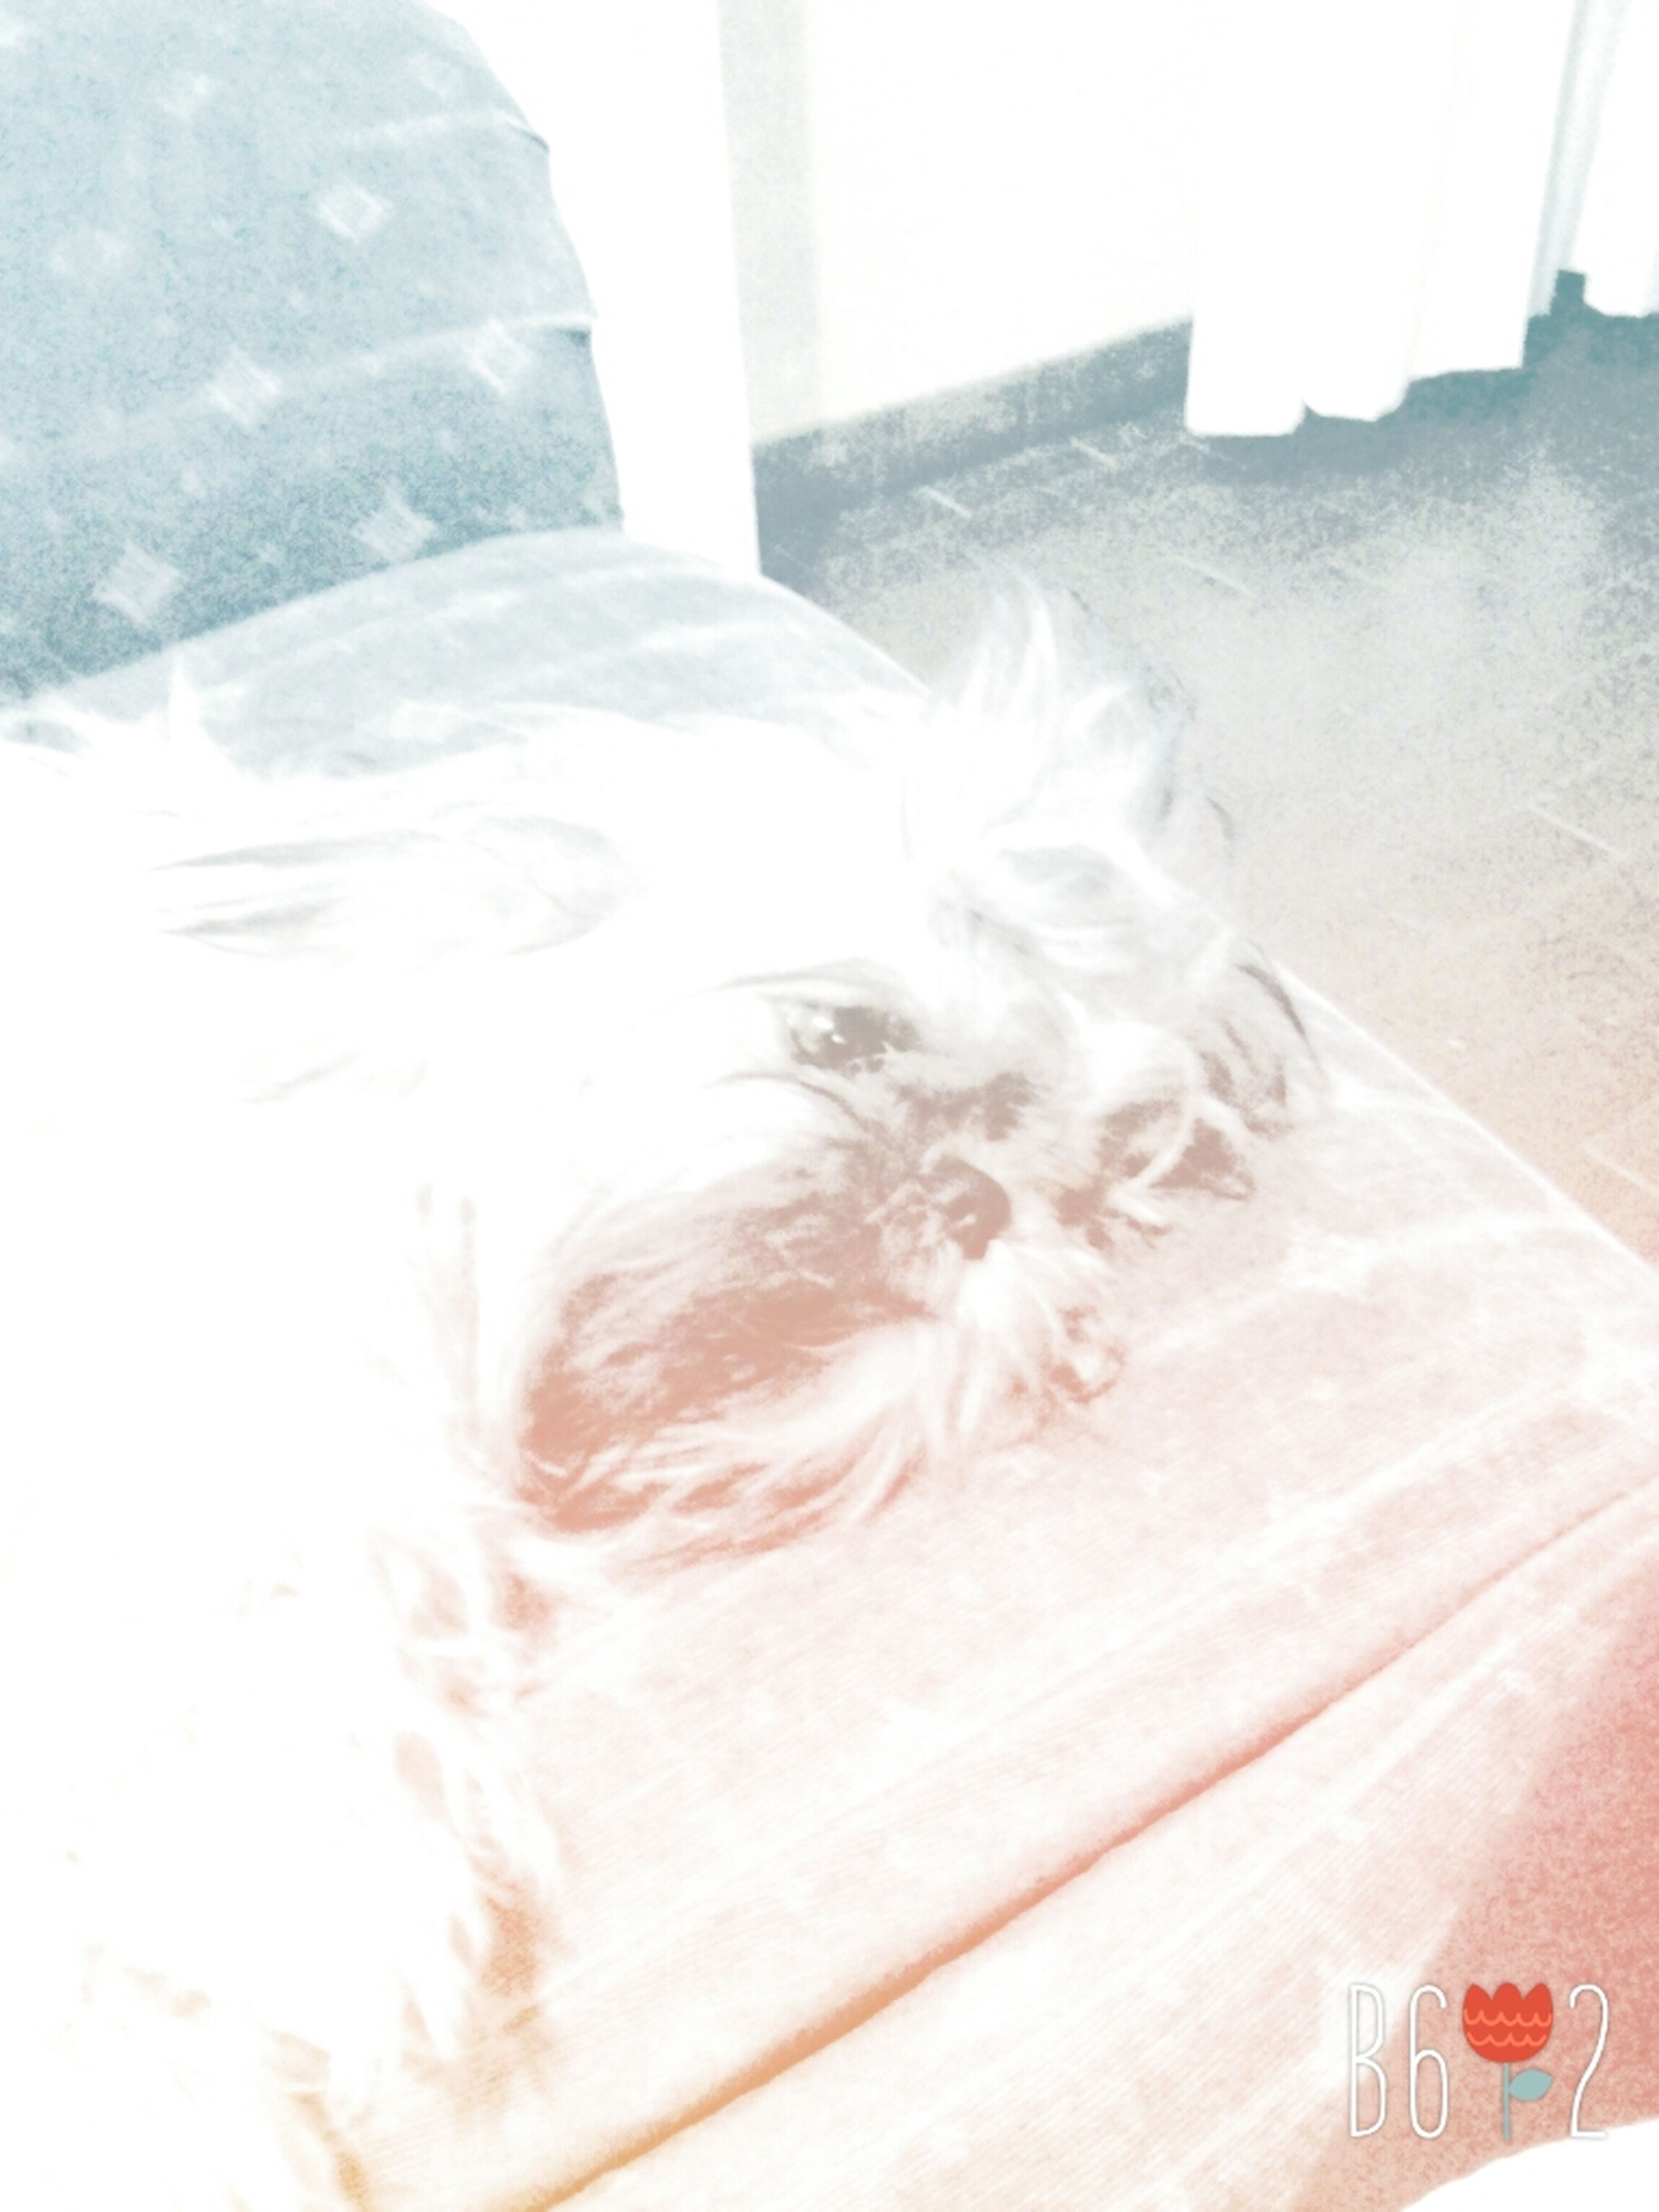 indoors, home interior, close-up, sunlight, white color, window, relaxation, high angle view, day, built structure, architecture, part of, lying down, pets, wall - building feature, domestic animals, headshot, bed